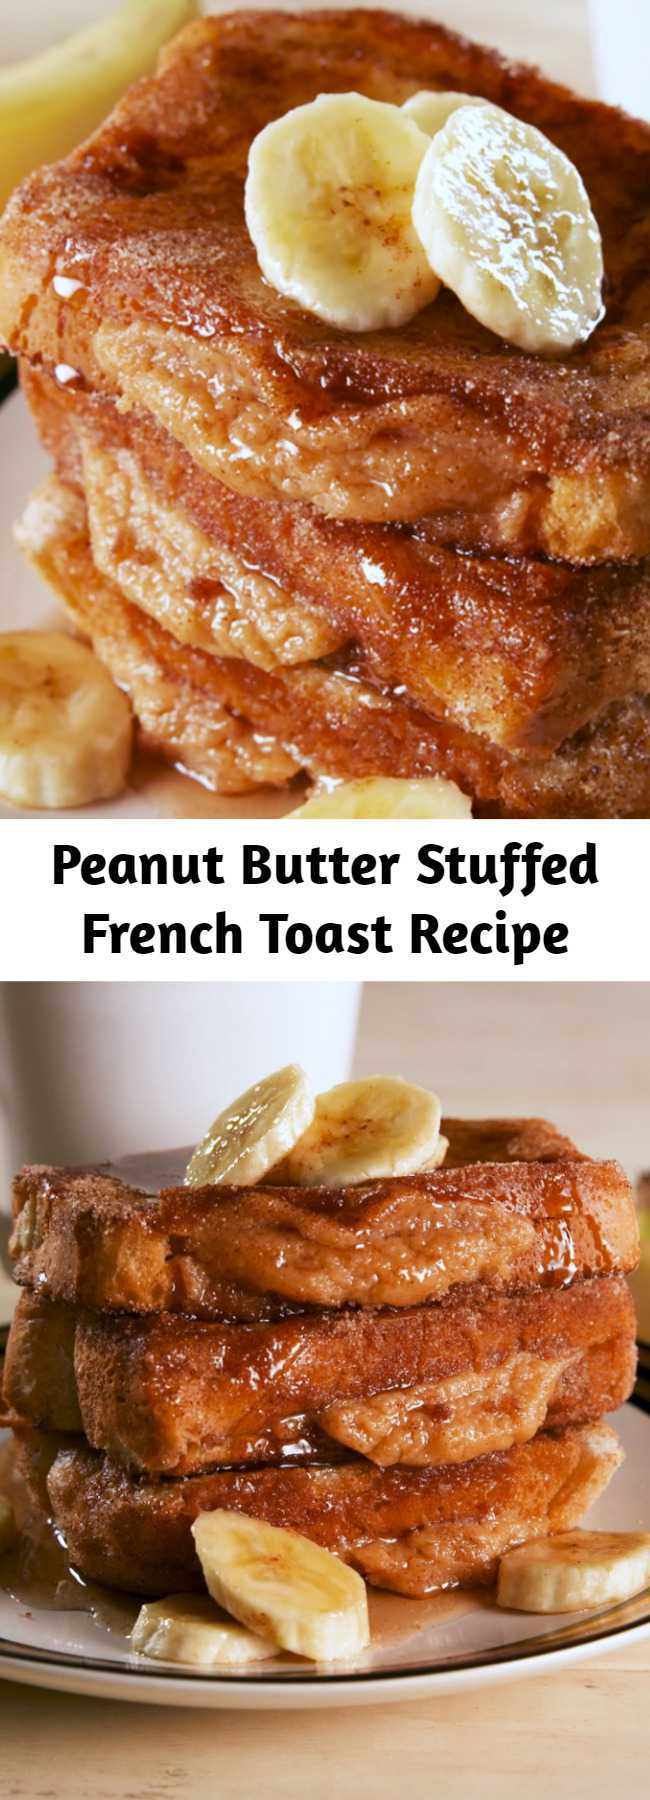 Peanut Butter Stuffed French Toast Recipe - Get out of town. #easyrecipe #breakfast #brunch #peanutbutter #food